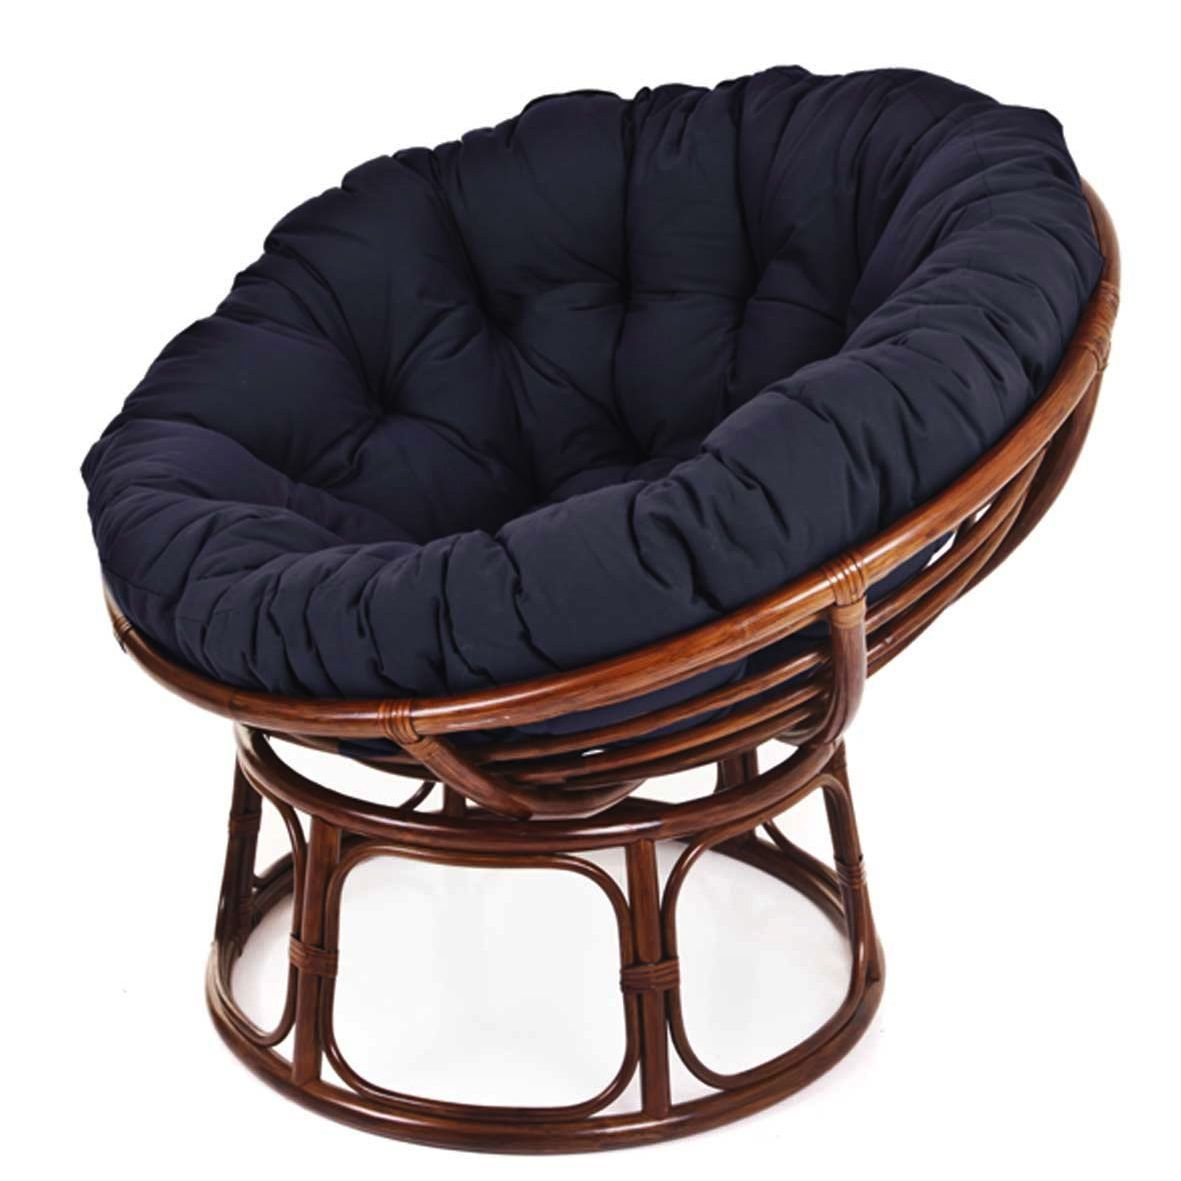 Gorgeus Papasan Chair #1774